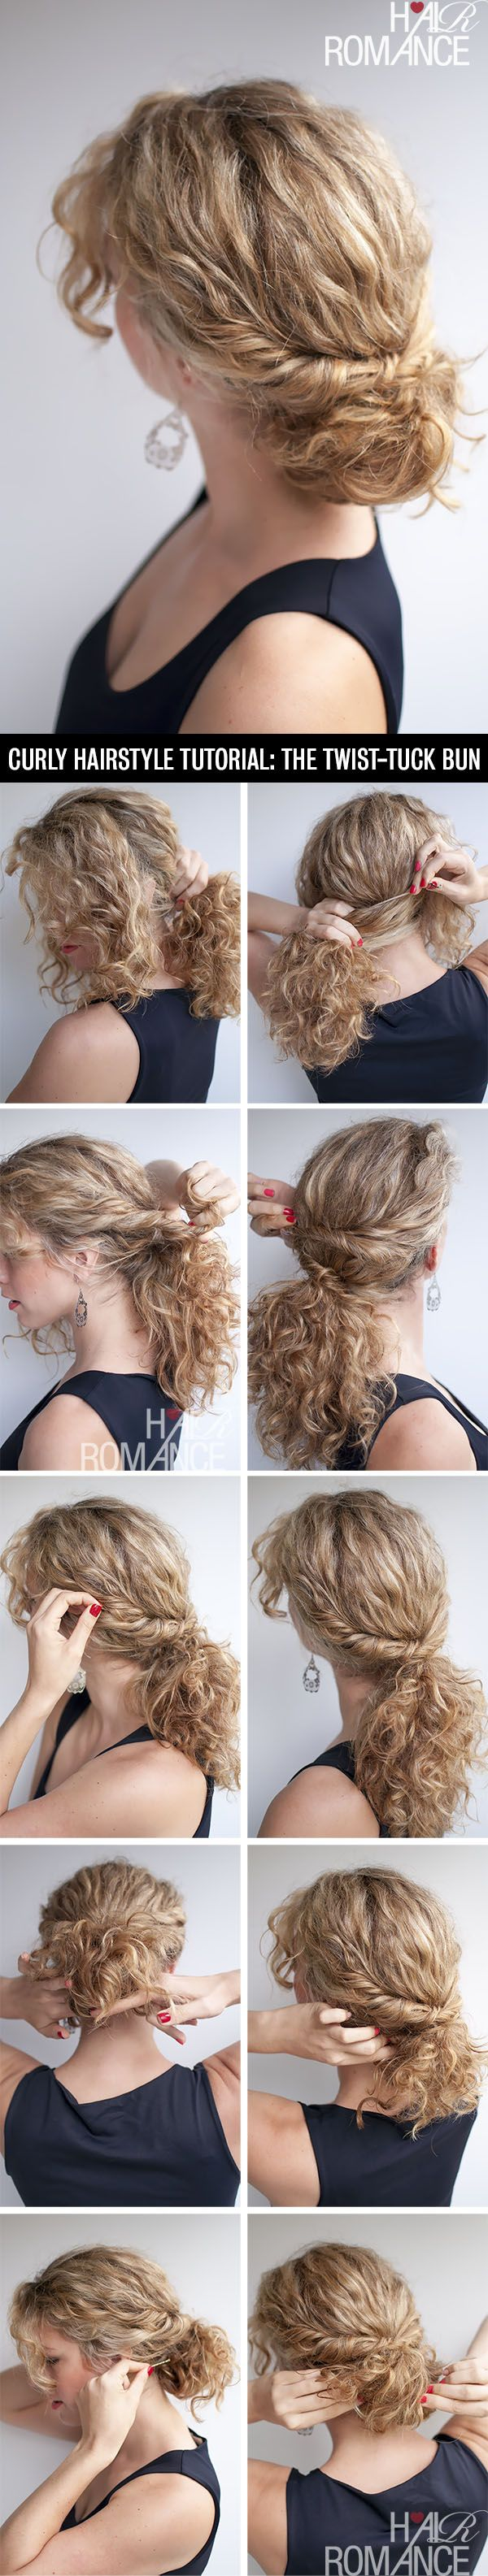 Tuck & Twist style buns tutorial